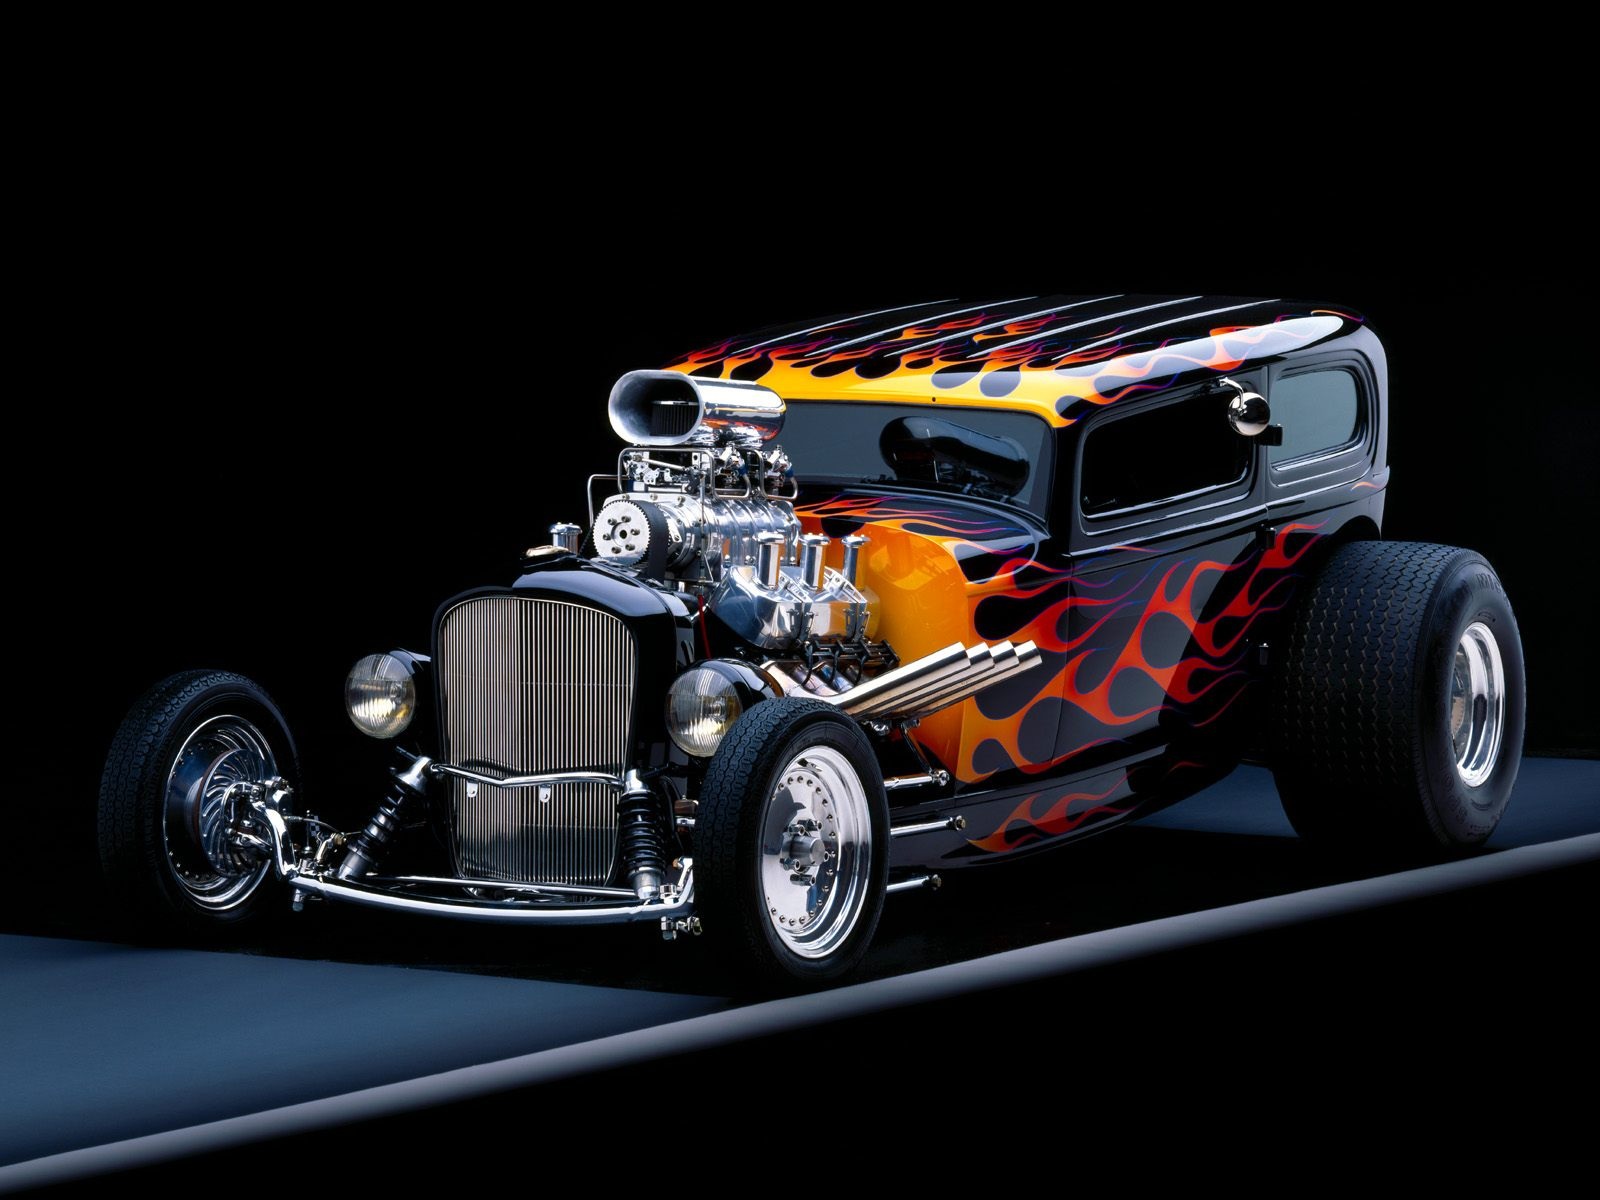 Hot Rod Wallpaper 5328 Wallpaper Wallpaper hd 1600x1200